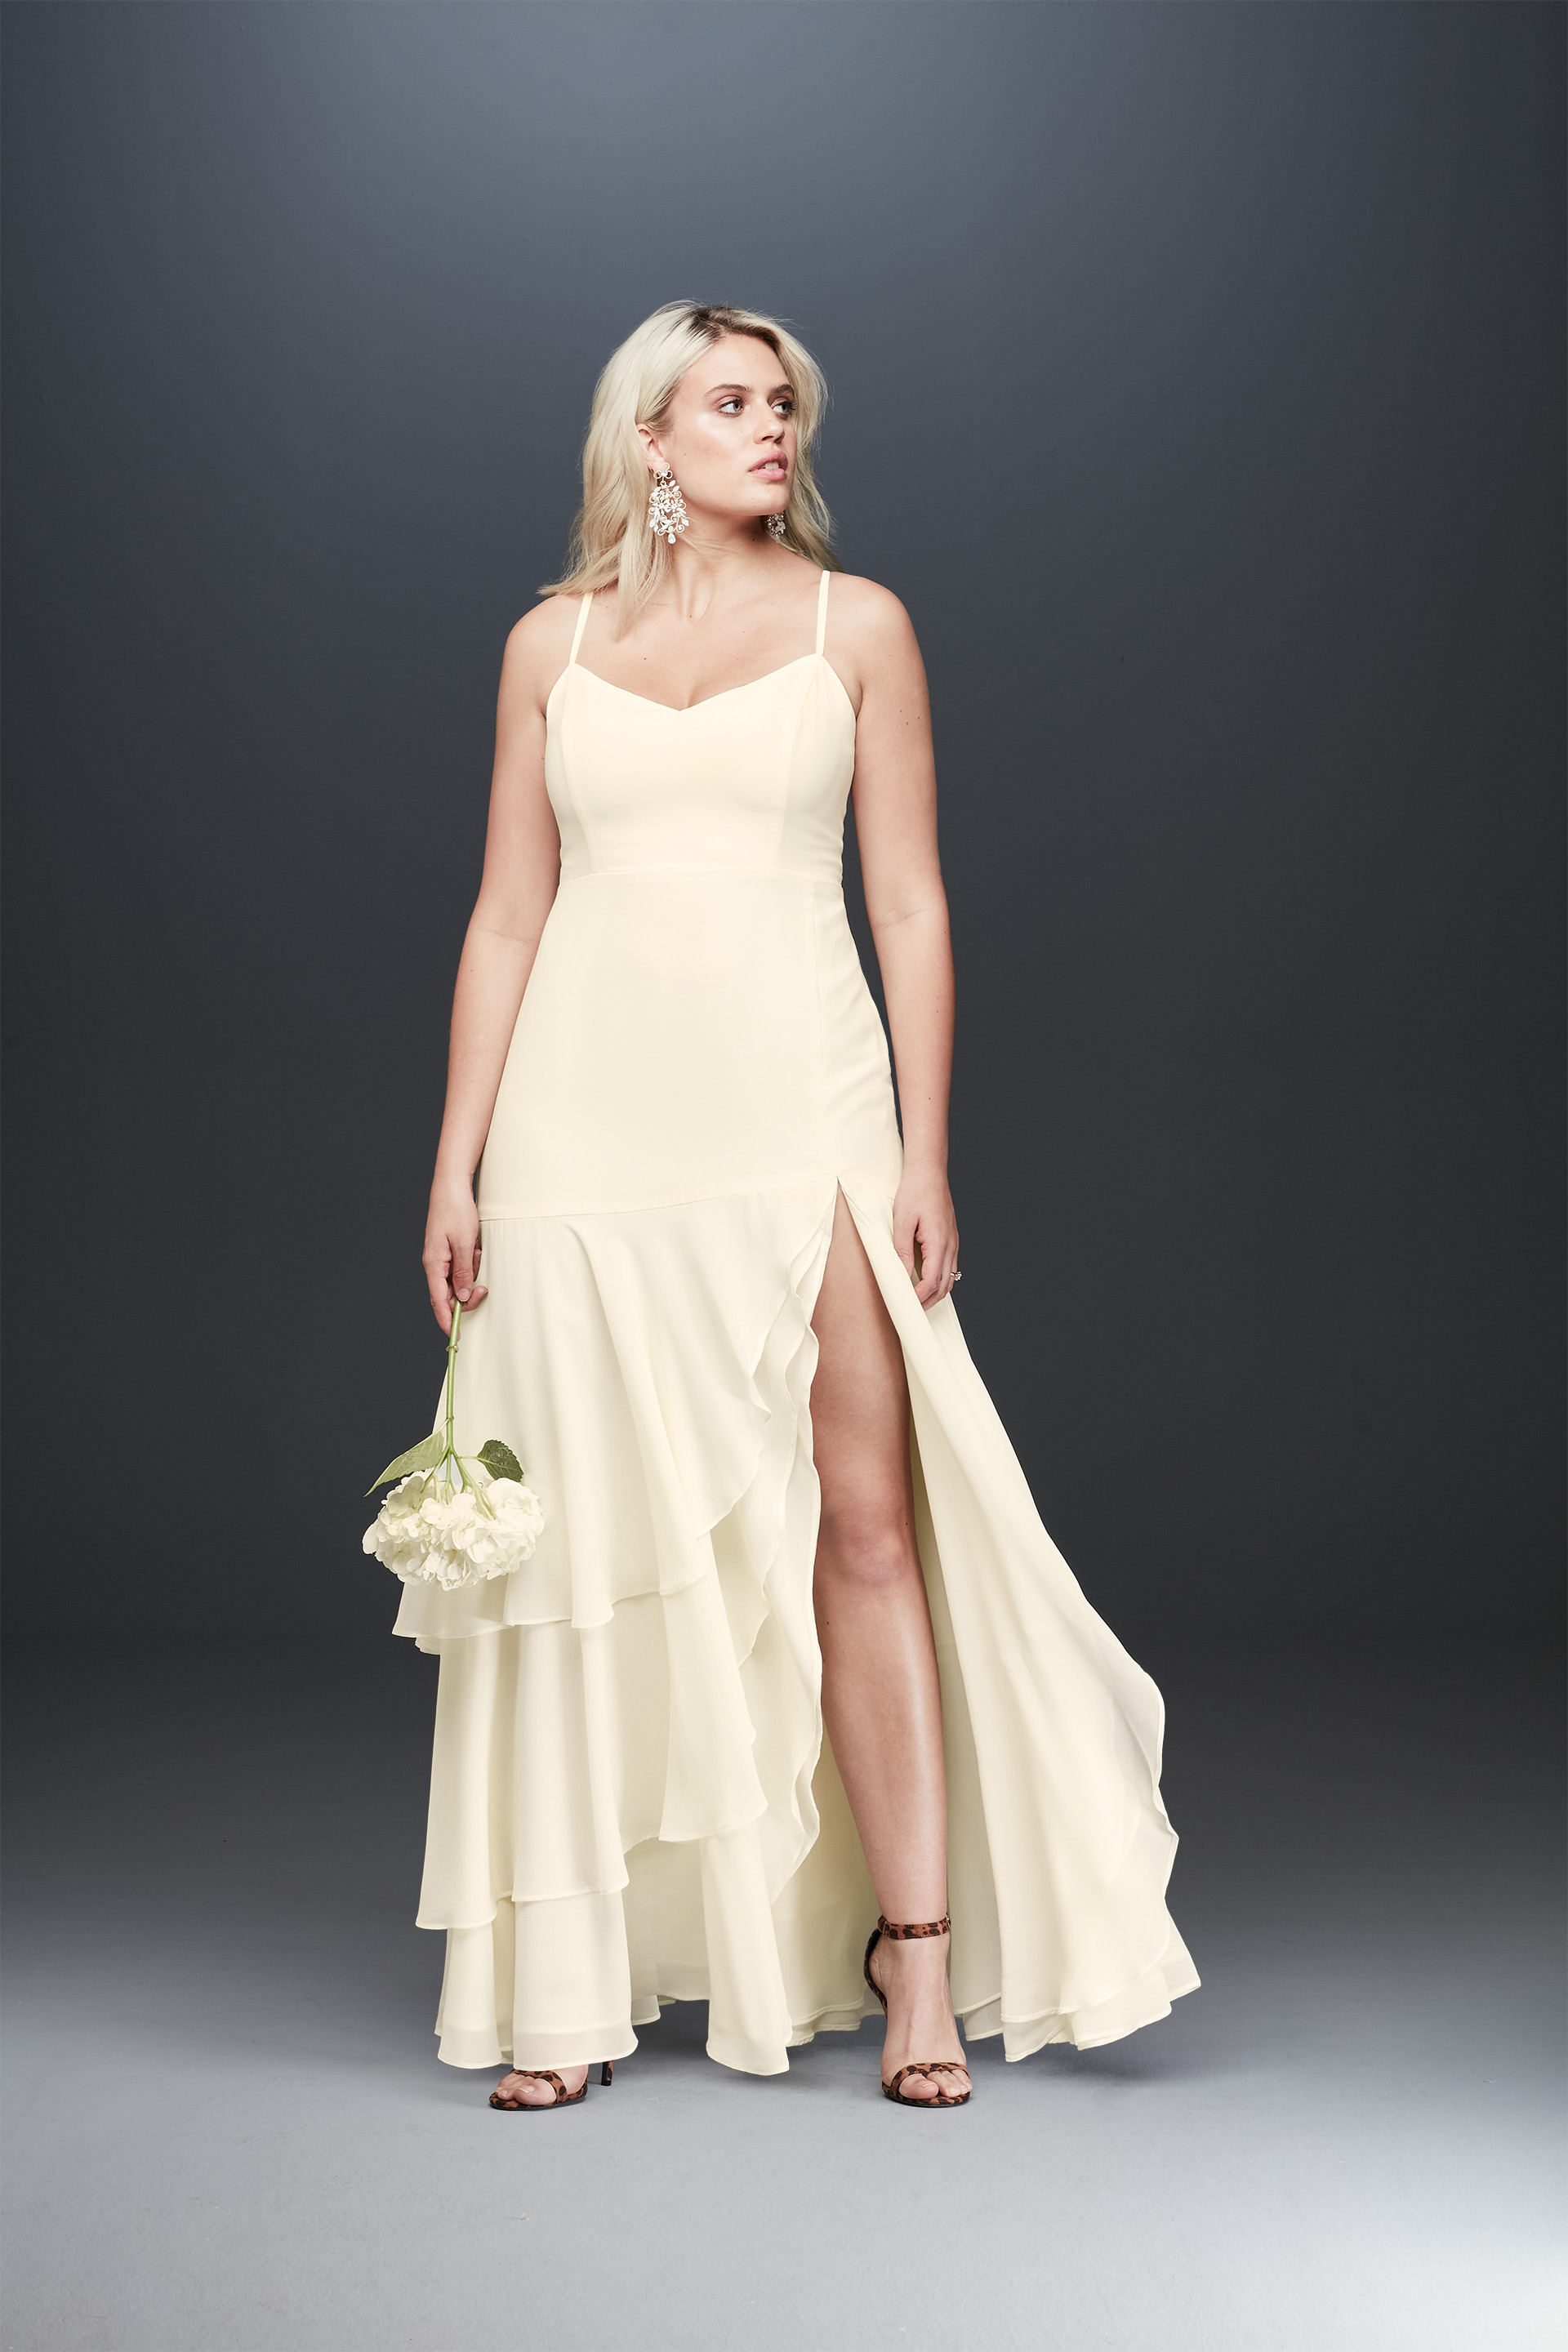 Bride looking away in spaghetti strap ruffled skirt wedding dress from Fame & Partners x David's Bridal collection